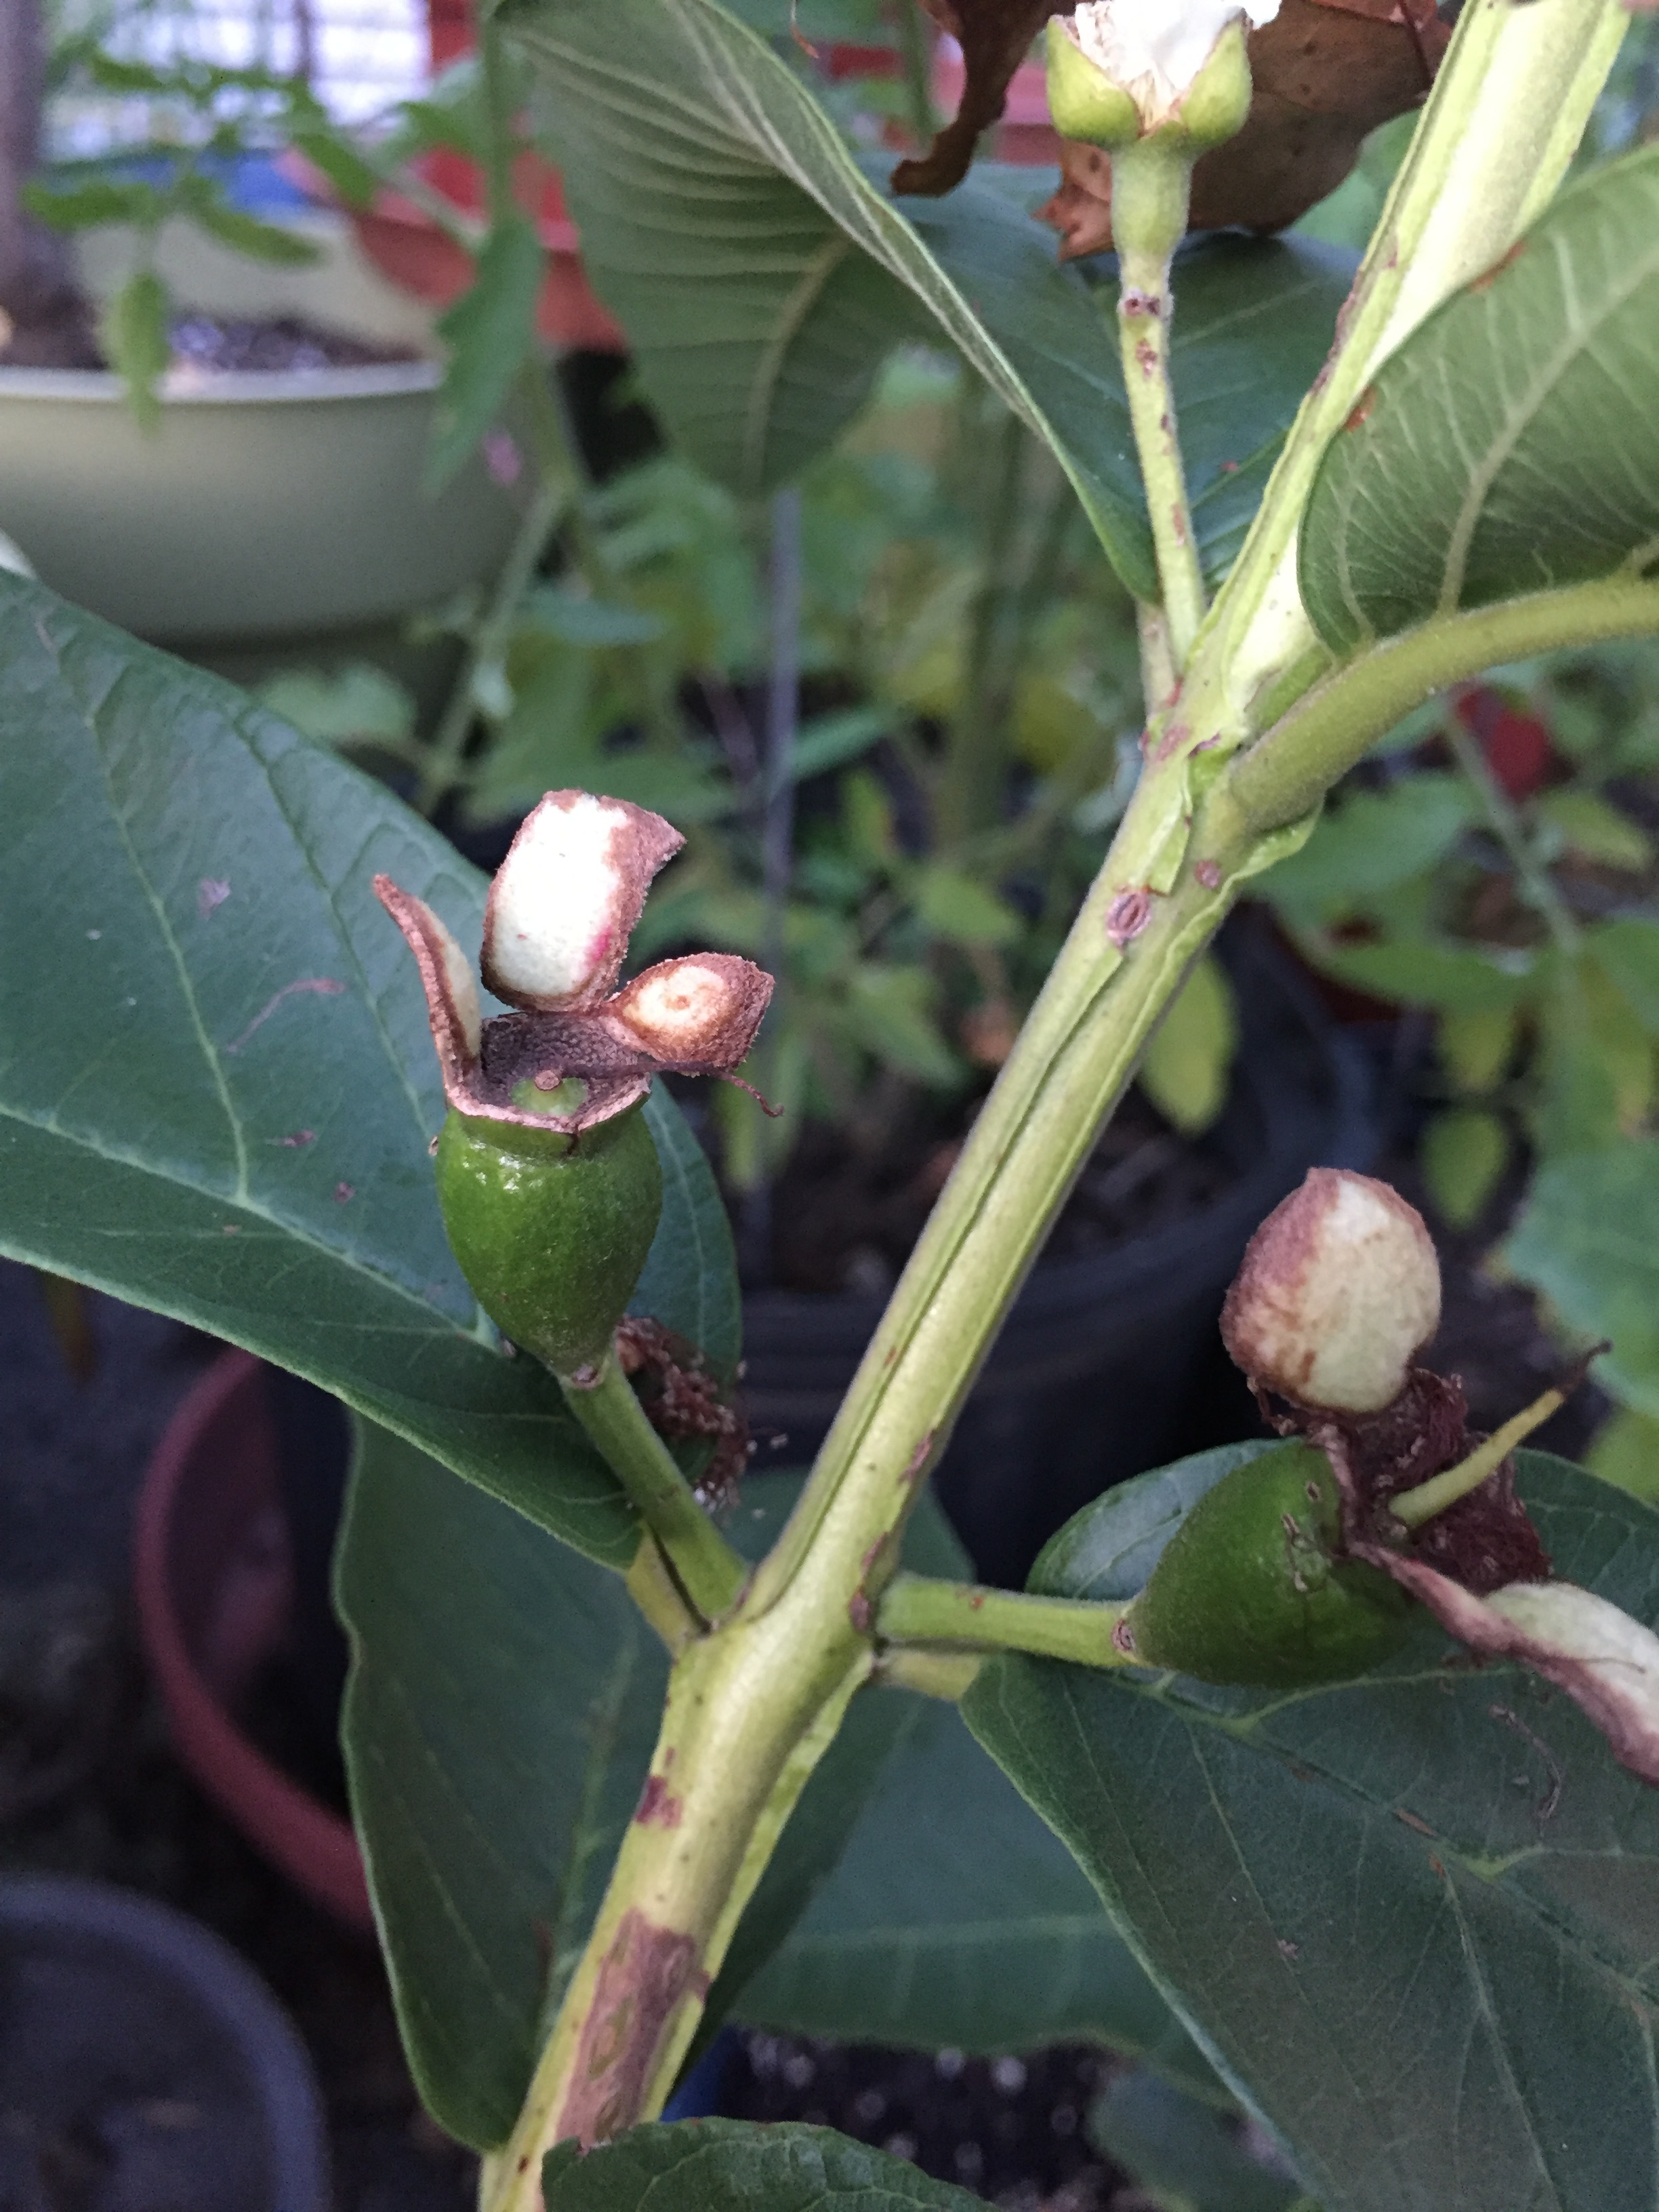 IMG_6371.JPG2448x3264 1.26 MB & Growing tropical fruit in containers in zone 6 PA - General Fruit ...